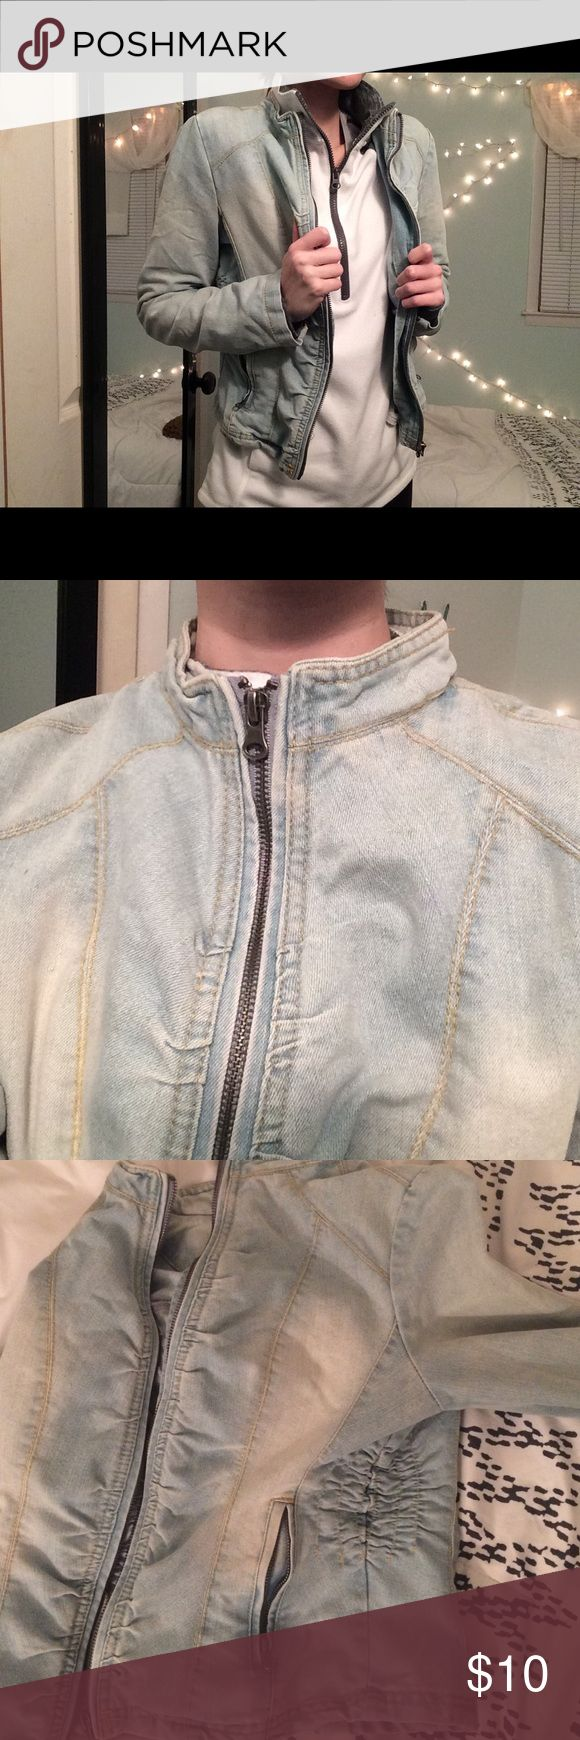 """Zip-up Jean Jacket Light wash denim zip up jacket. 65% cotton. 31% polyester. 4% """"other""""... Features zip up pockets and also zip up cuffs. BONGO Jackets & Coats Jean Jackets"""